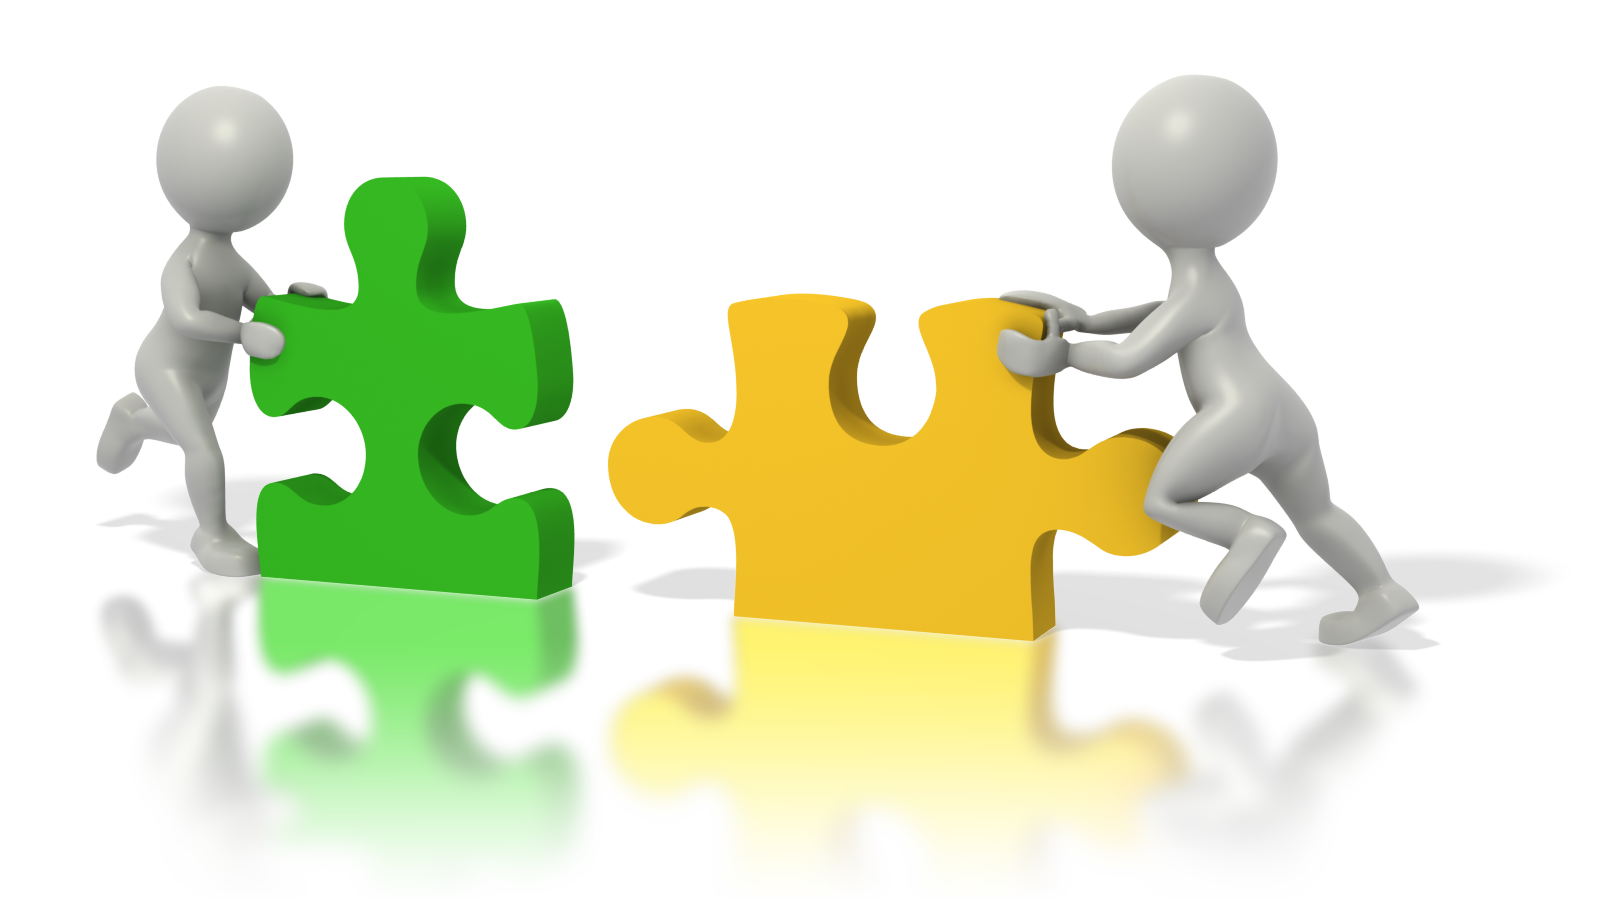 Collaboration clipart puzzle piece person. Together helping you to